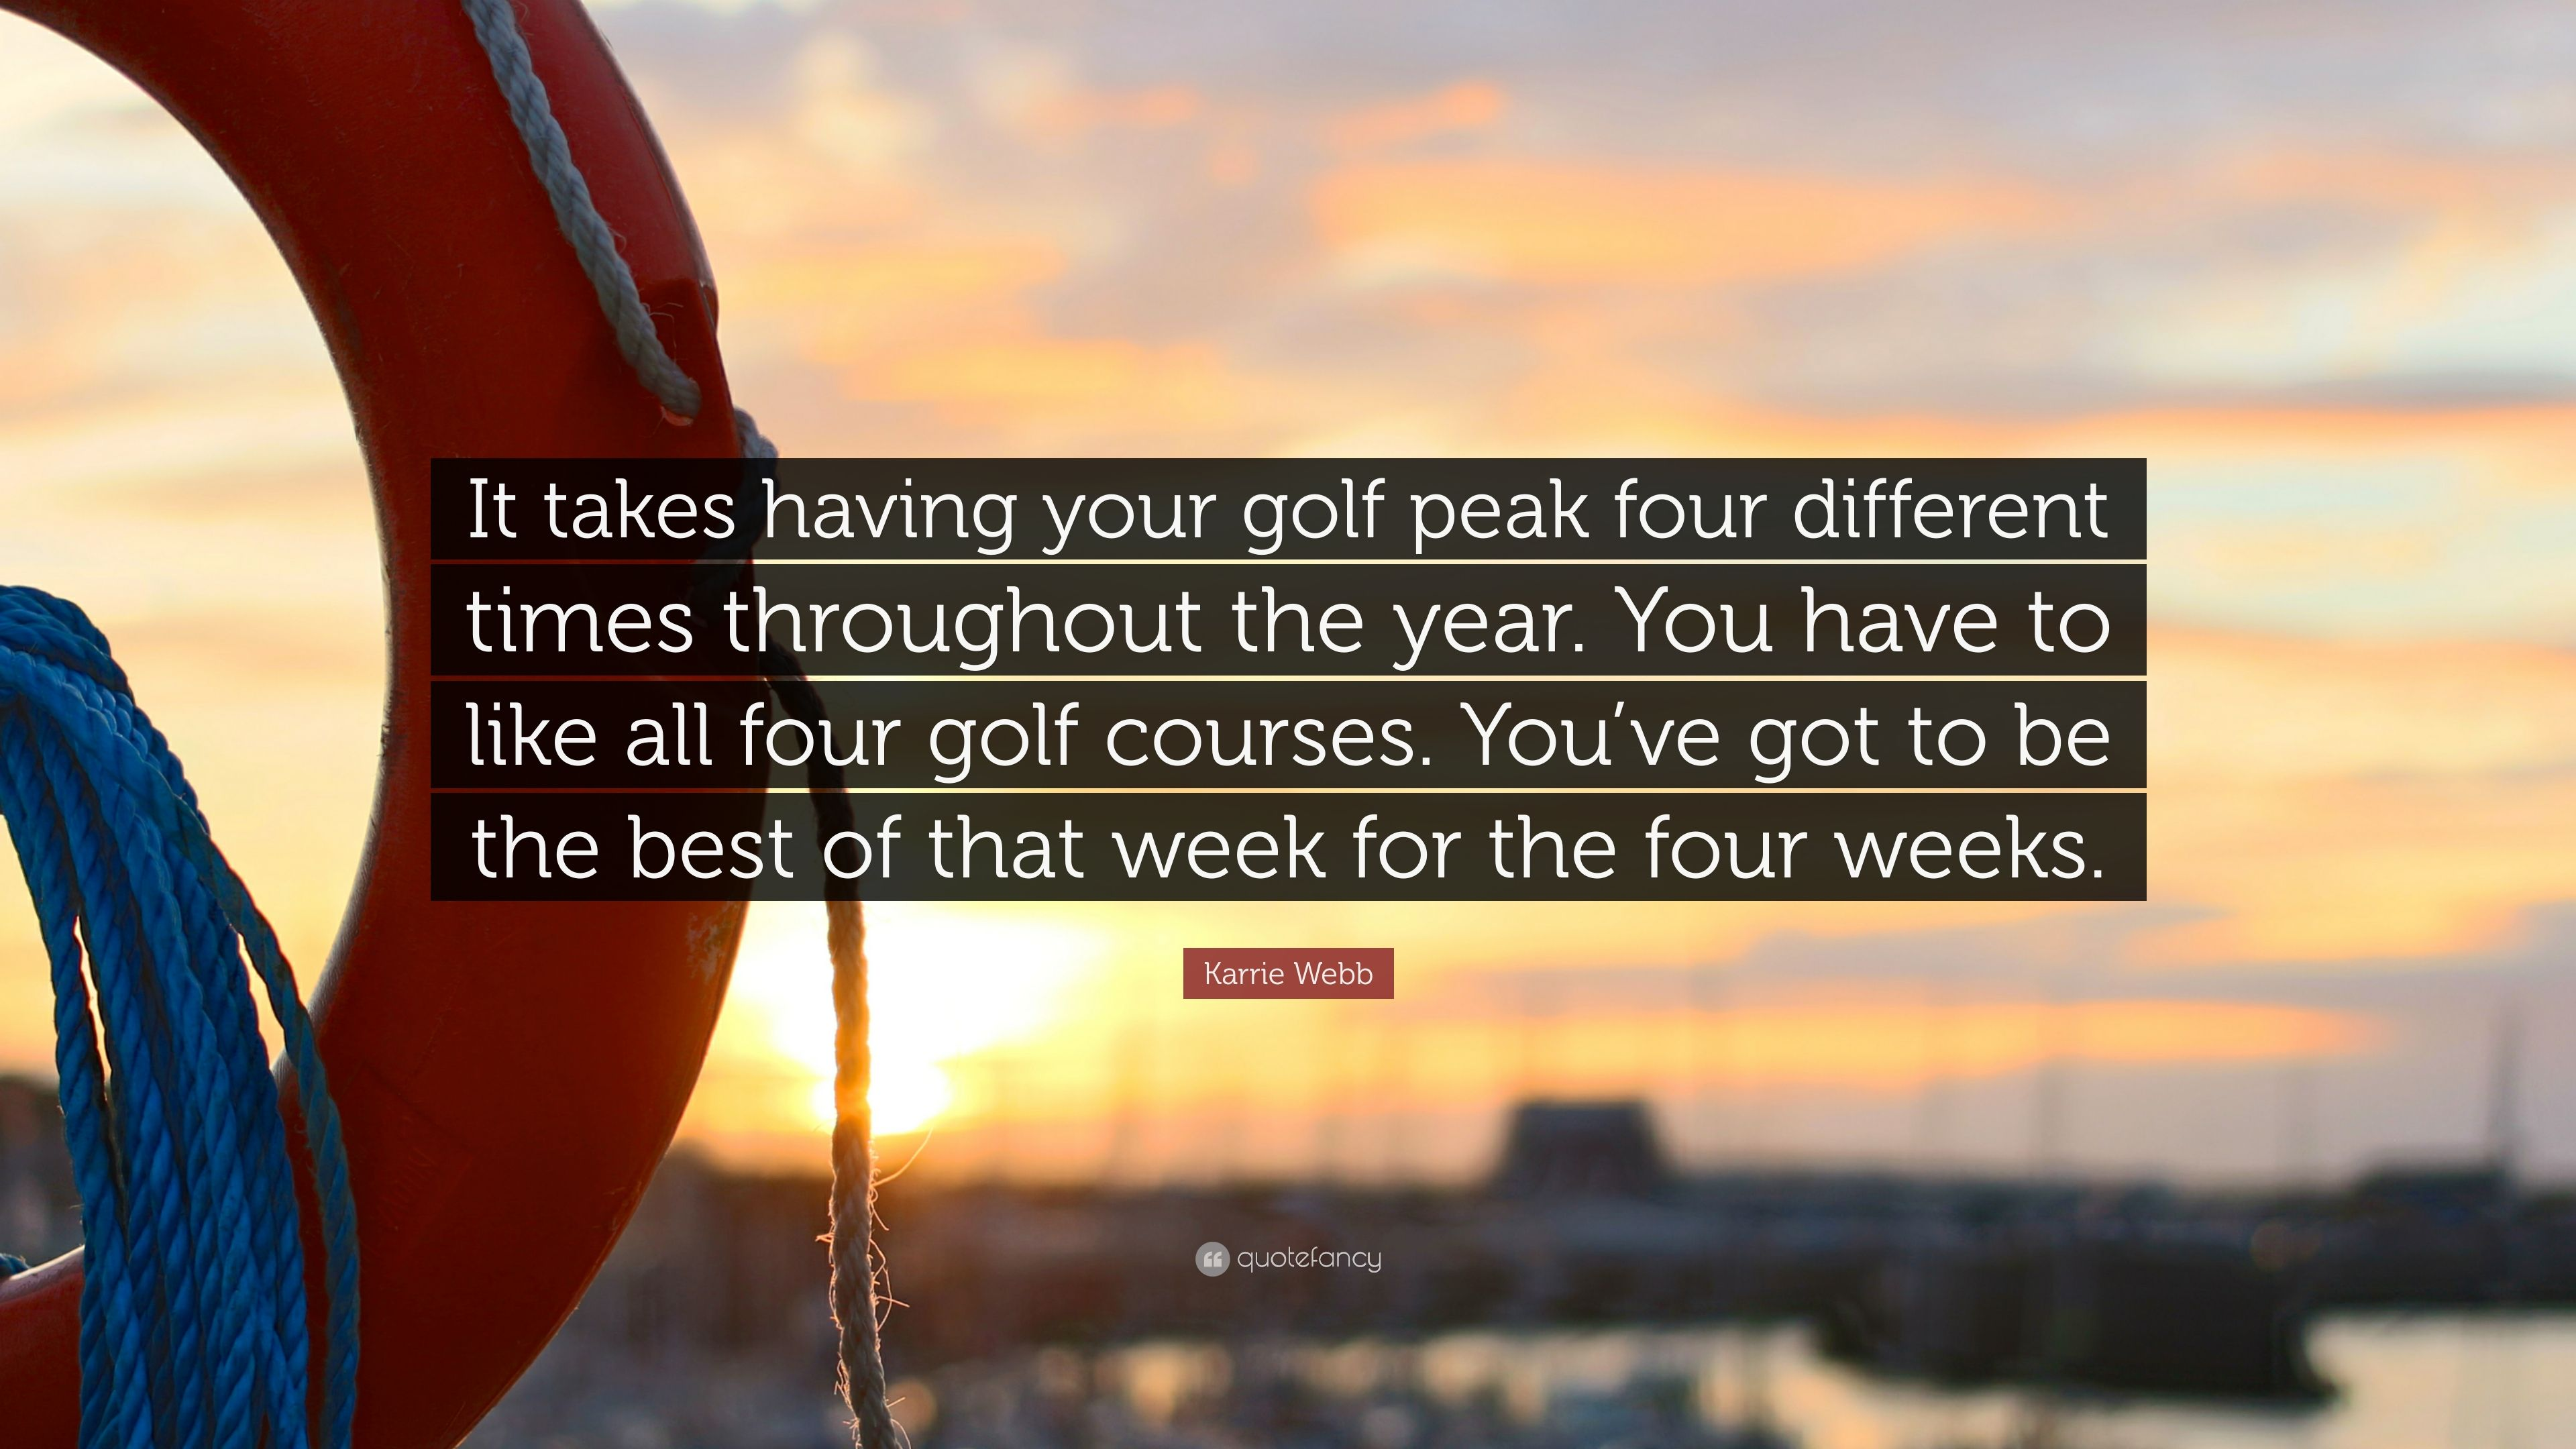 karrie webb quote u201cit takes having your golf peak four different